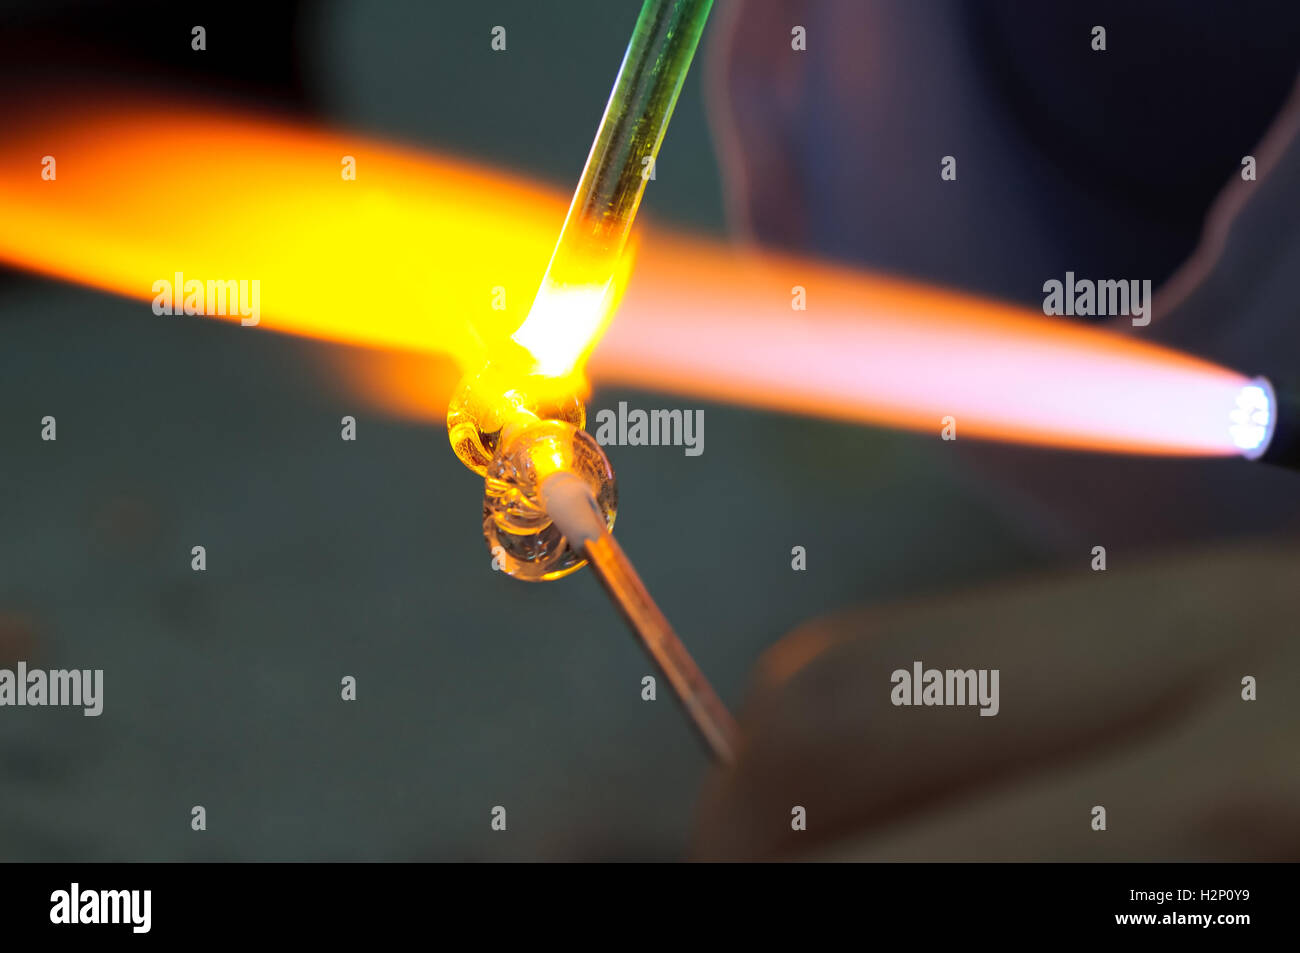 The art of shaping glass using fire. - Stock Image